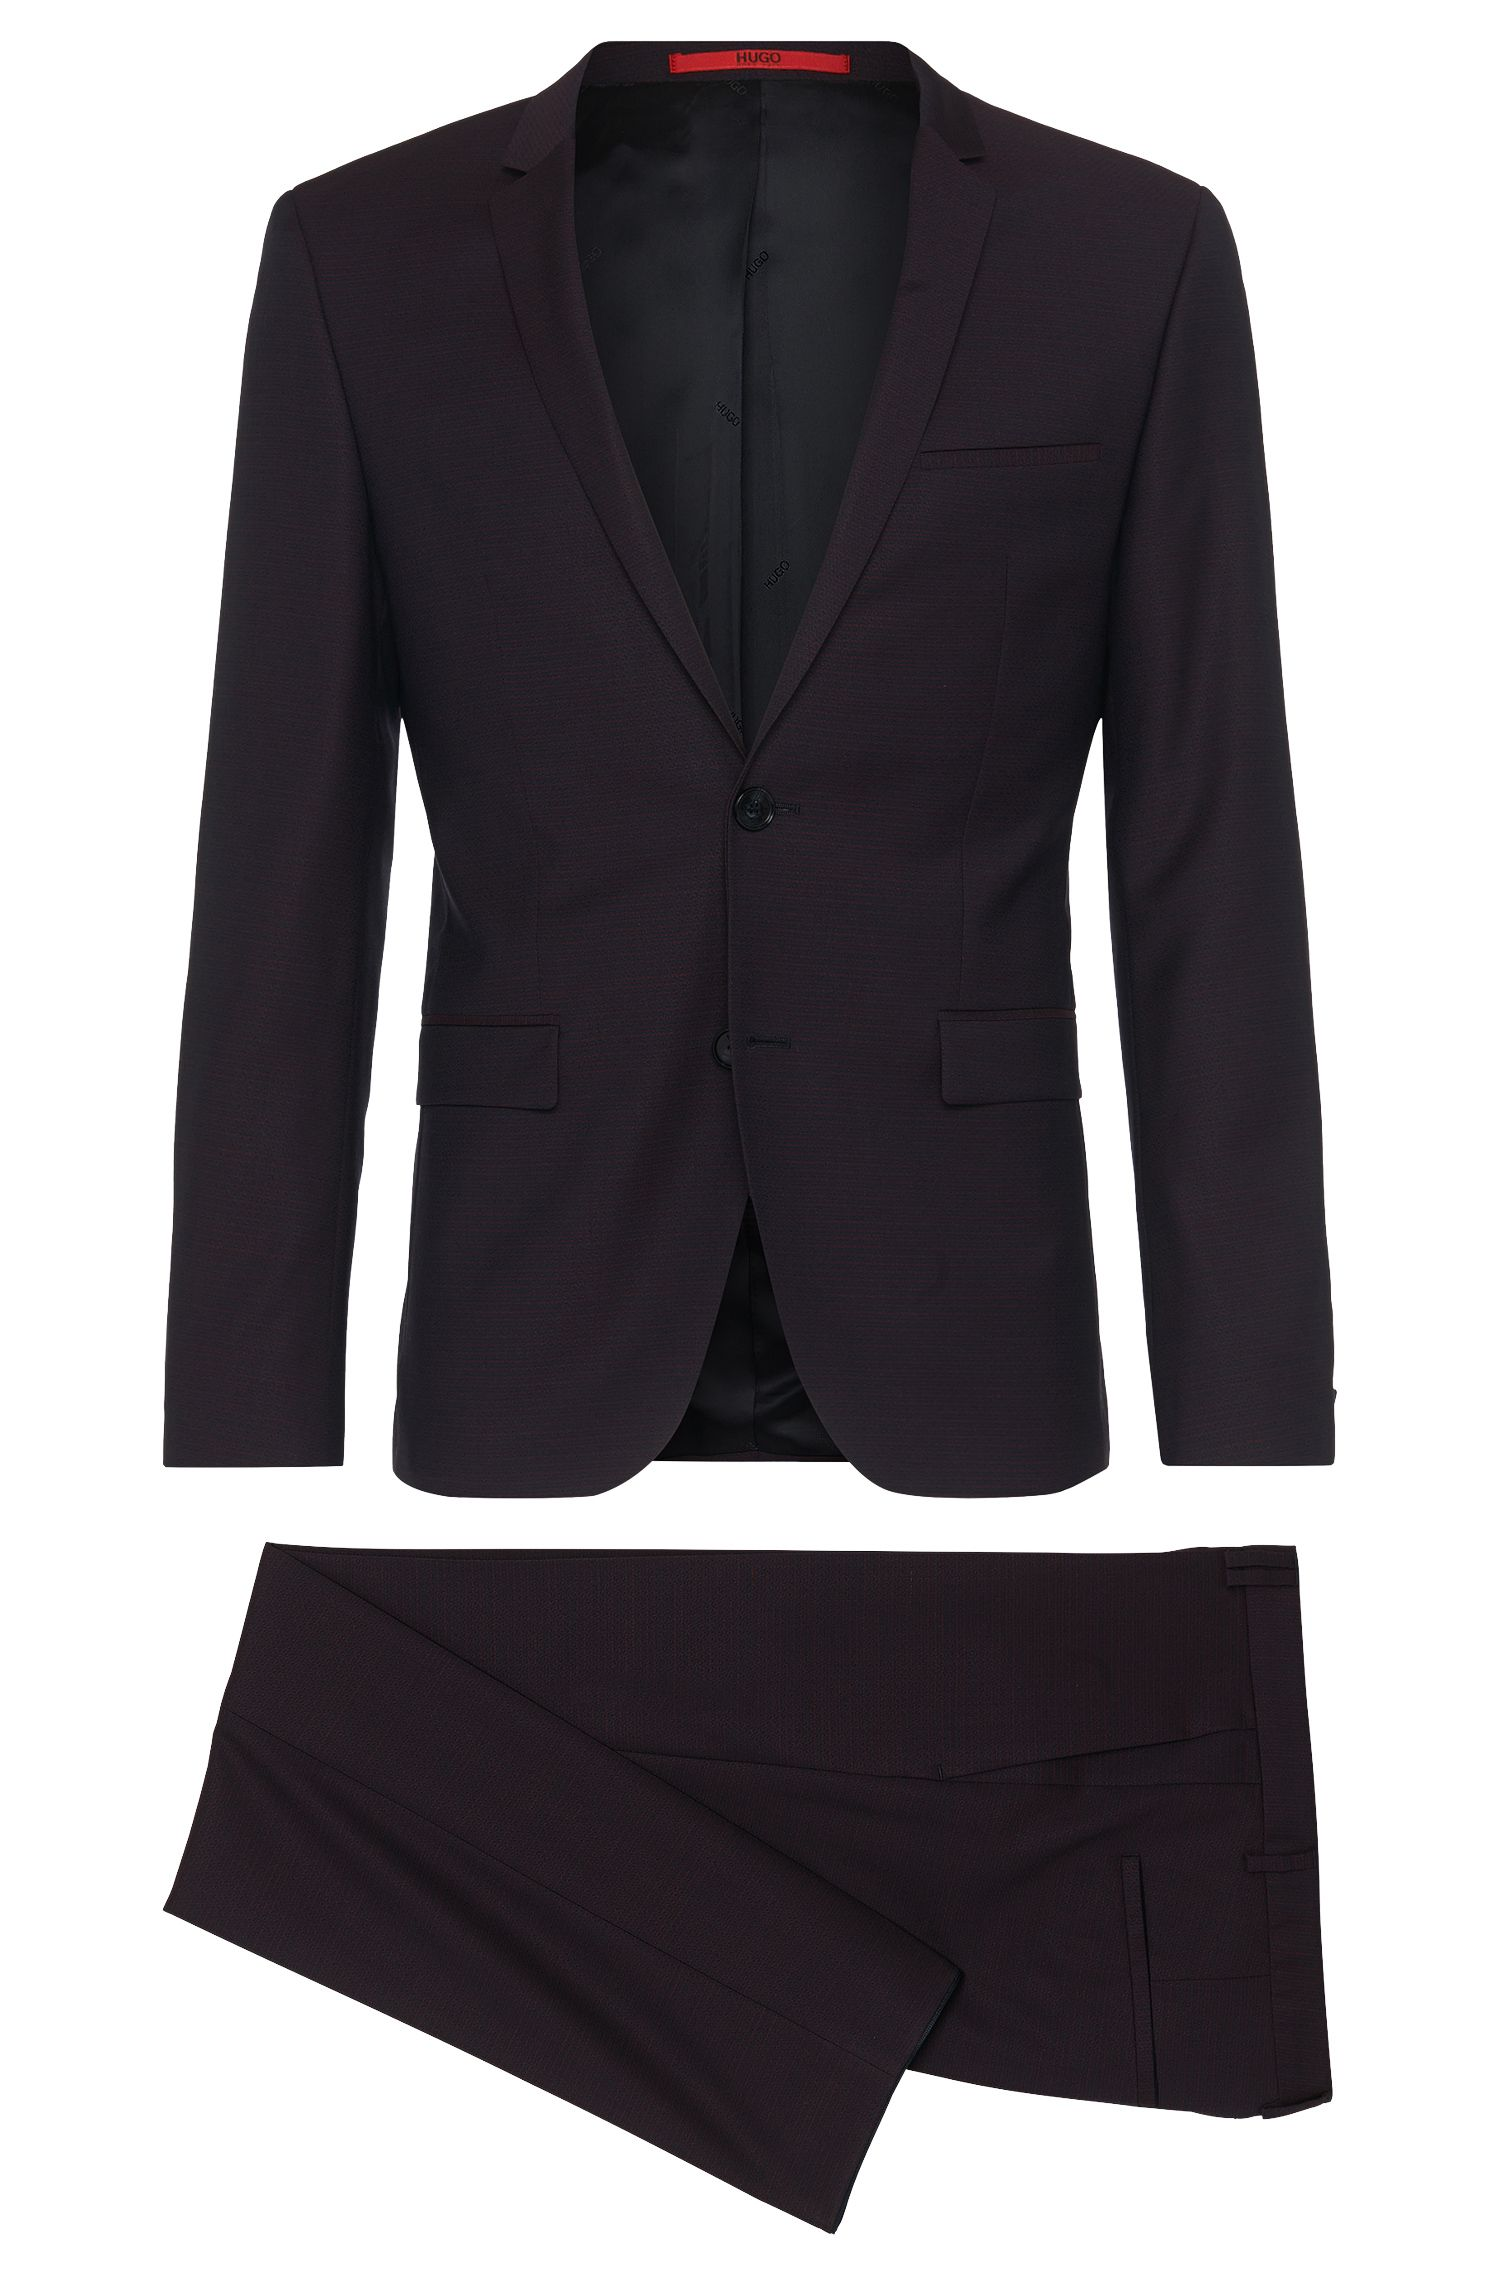 'Adris/Heibo' | Extra Slim Fit, Super 100 Virgin Wool Suit